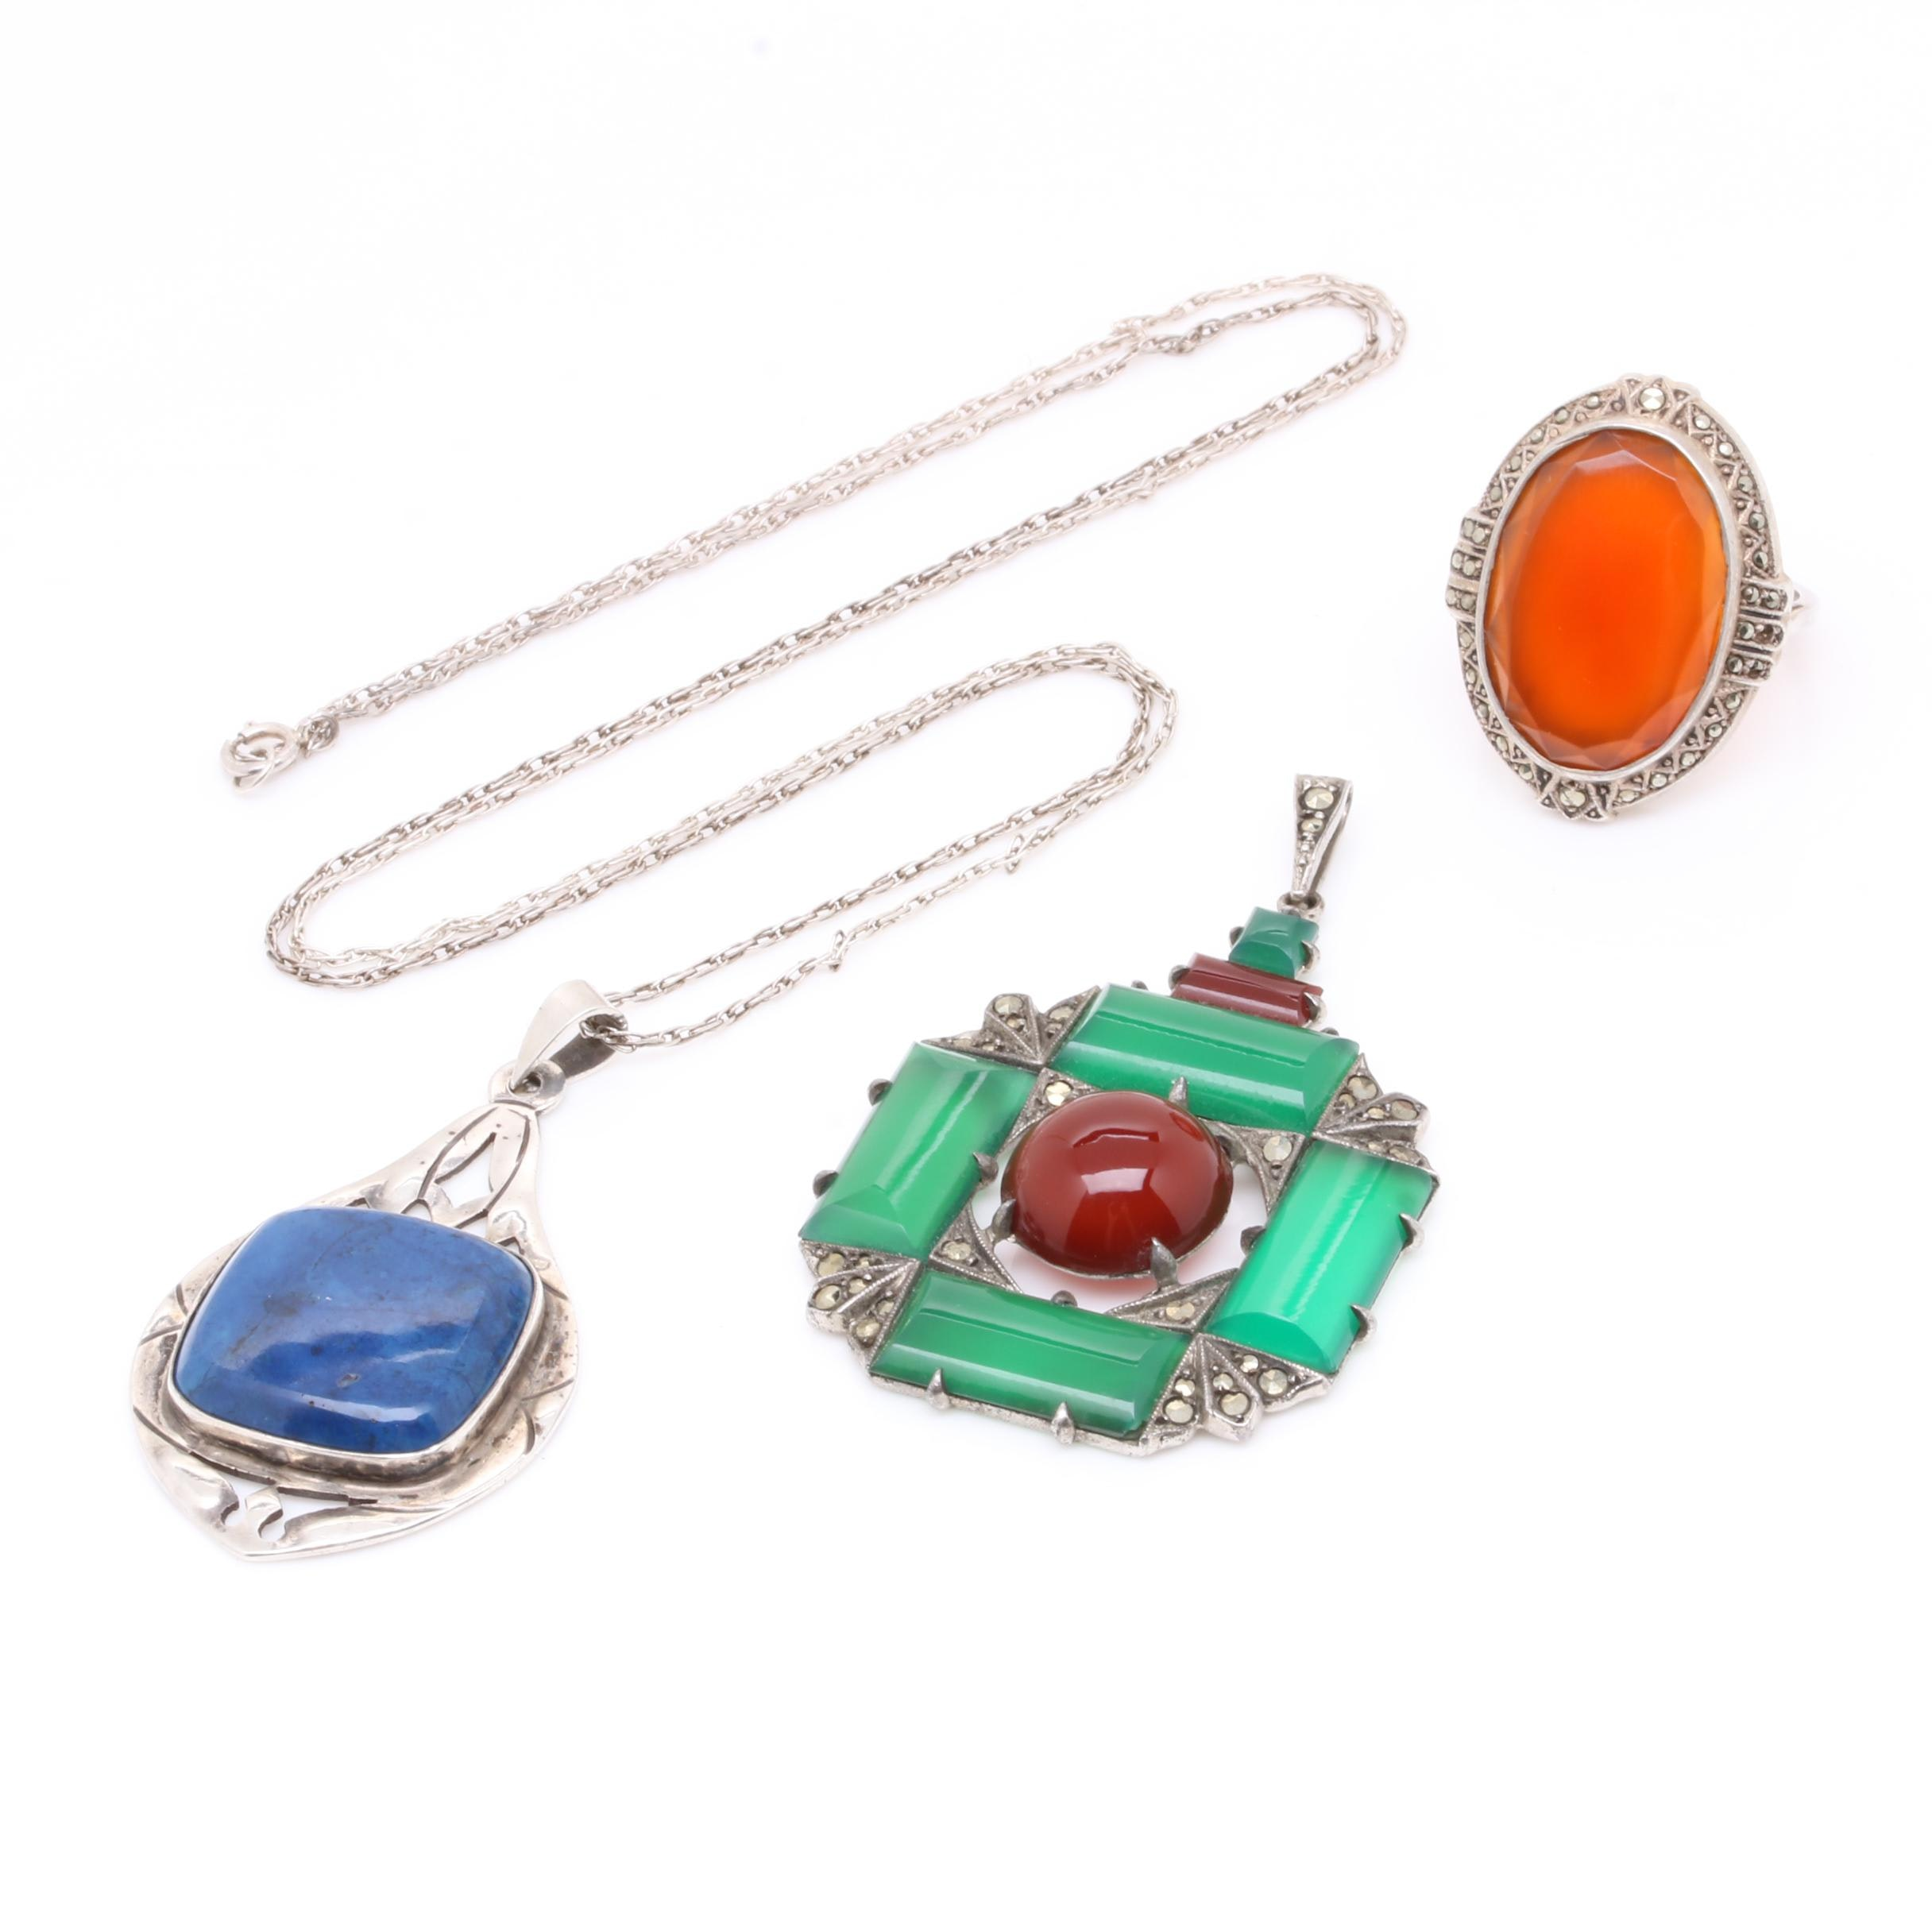 Sterling Silver Jewelry Featuring Green Chalcedony, Carnelian and Lapis Lazuli